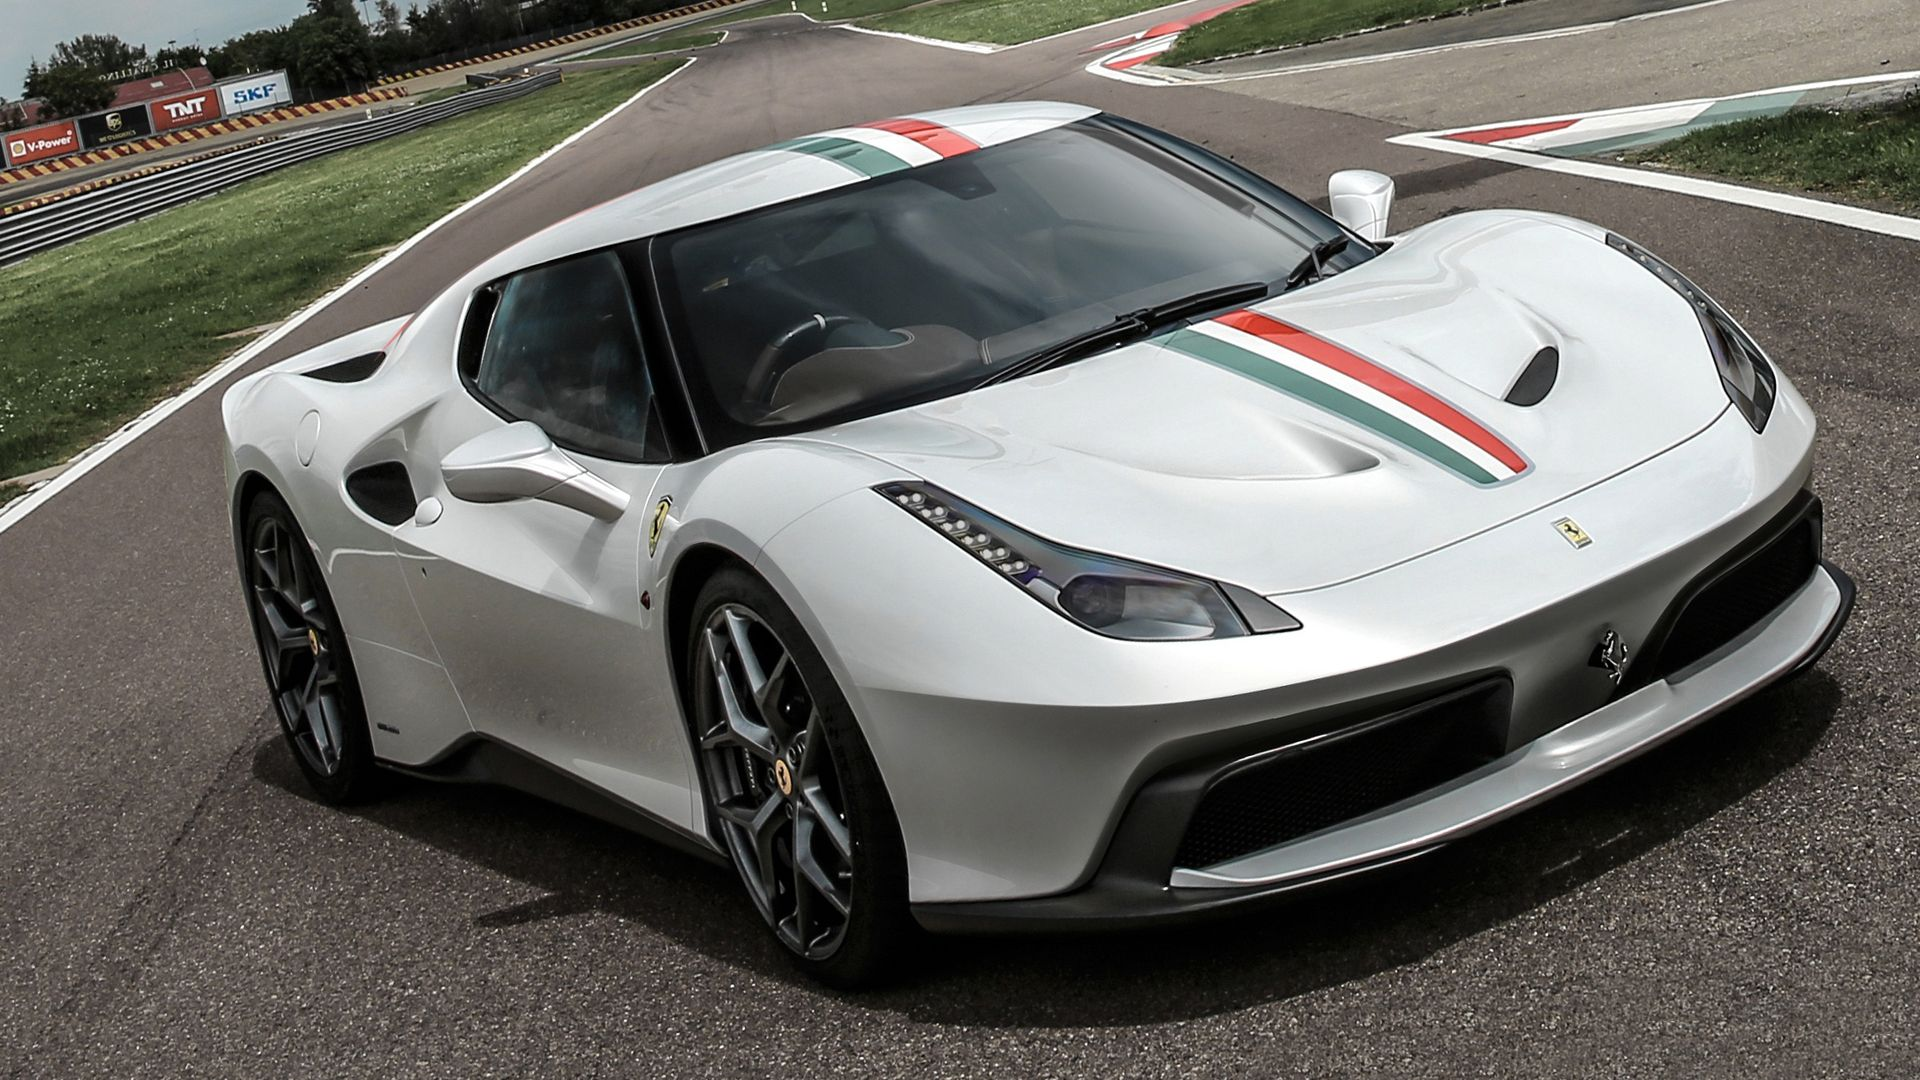 New 2019 Ferrari 458 Speciale Wallpaper Hd Desktop With Images